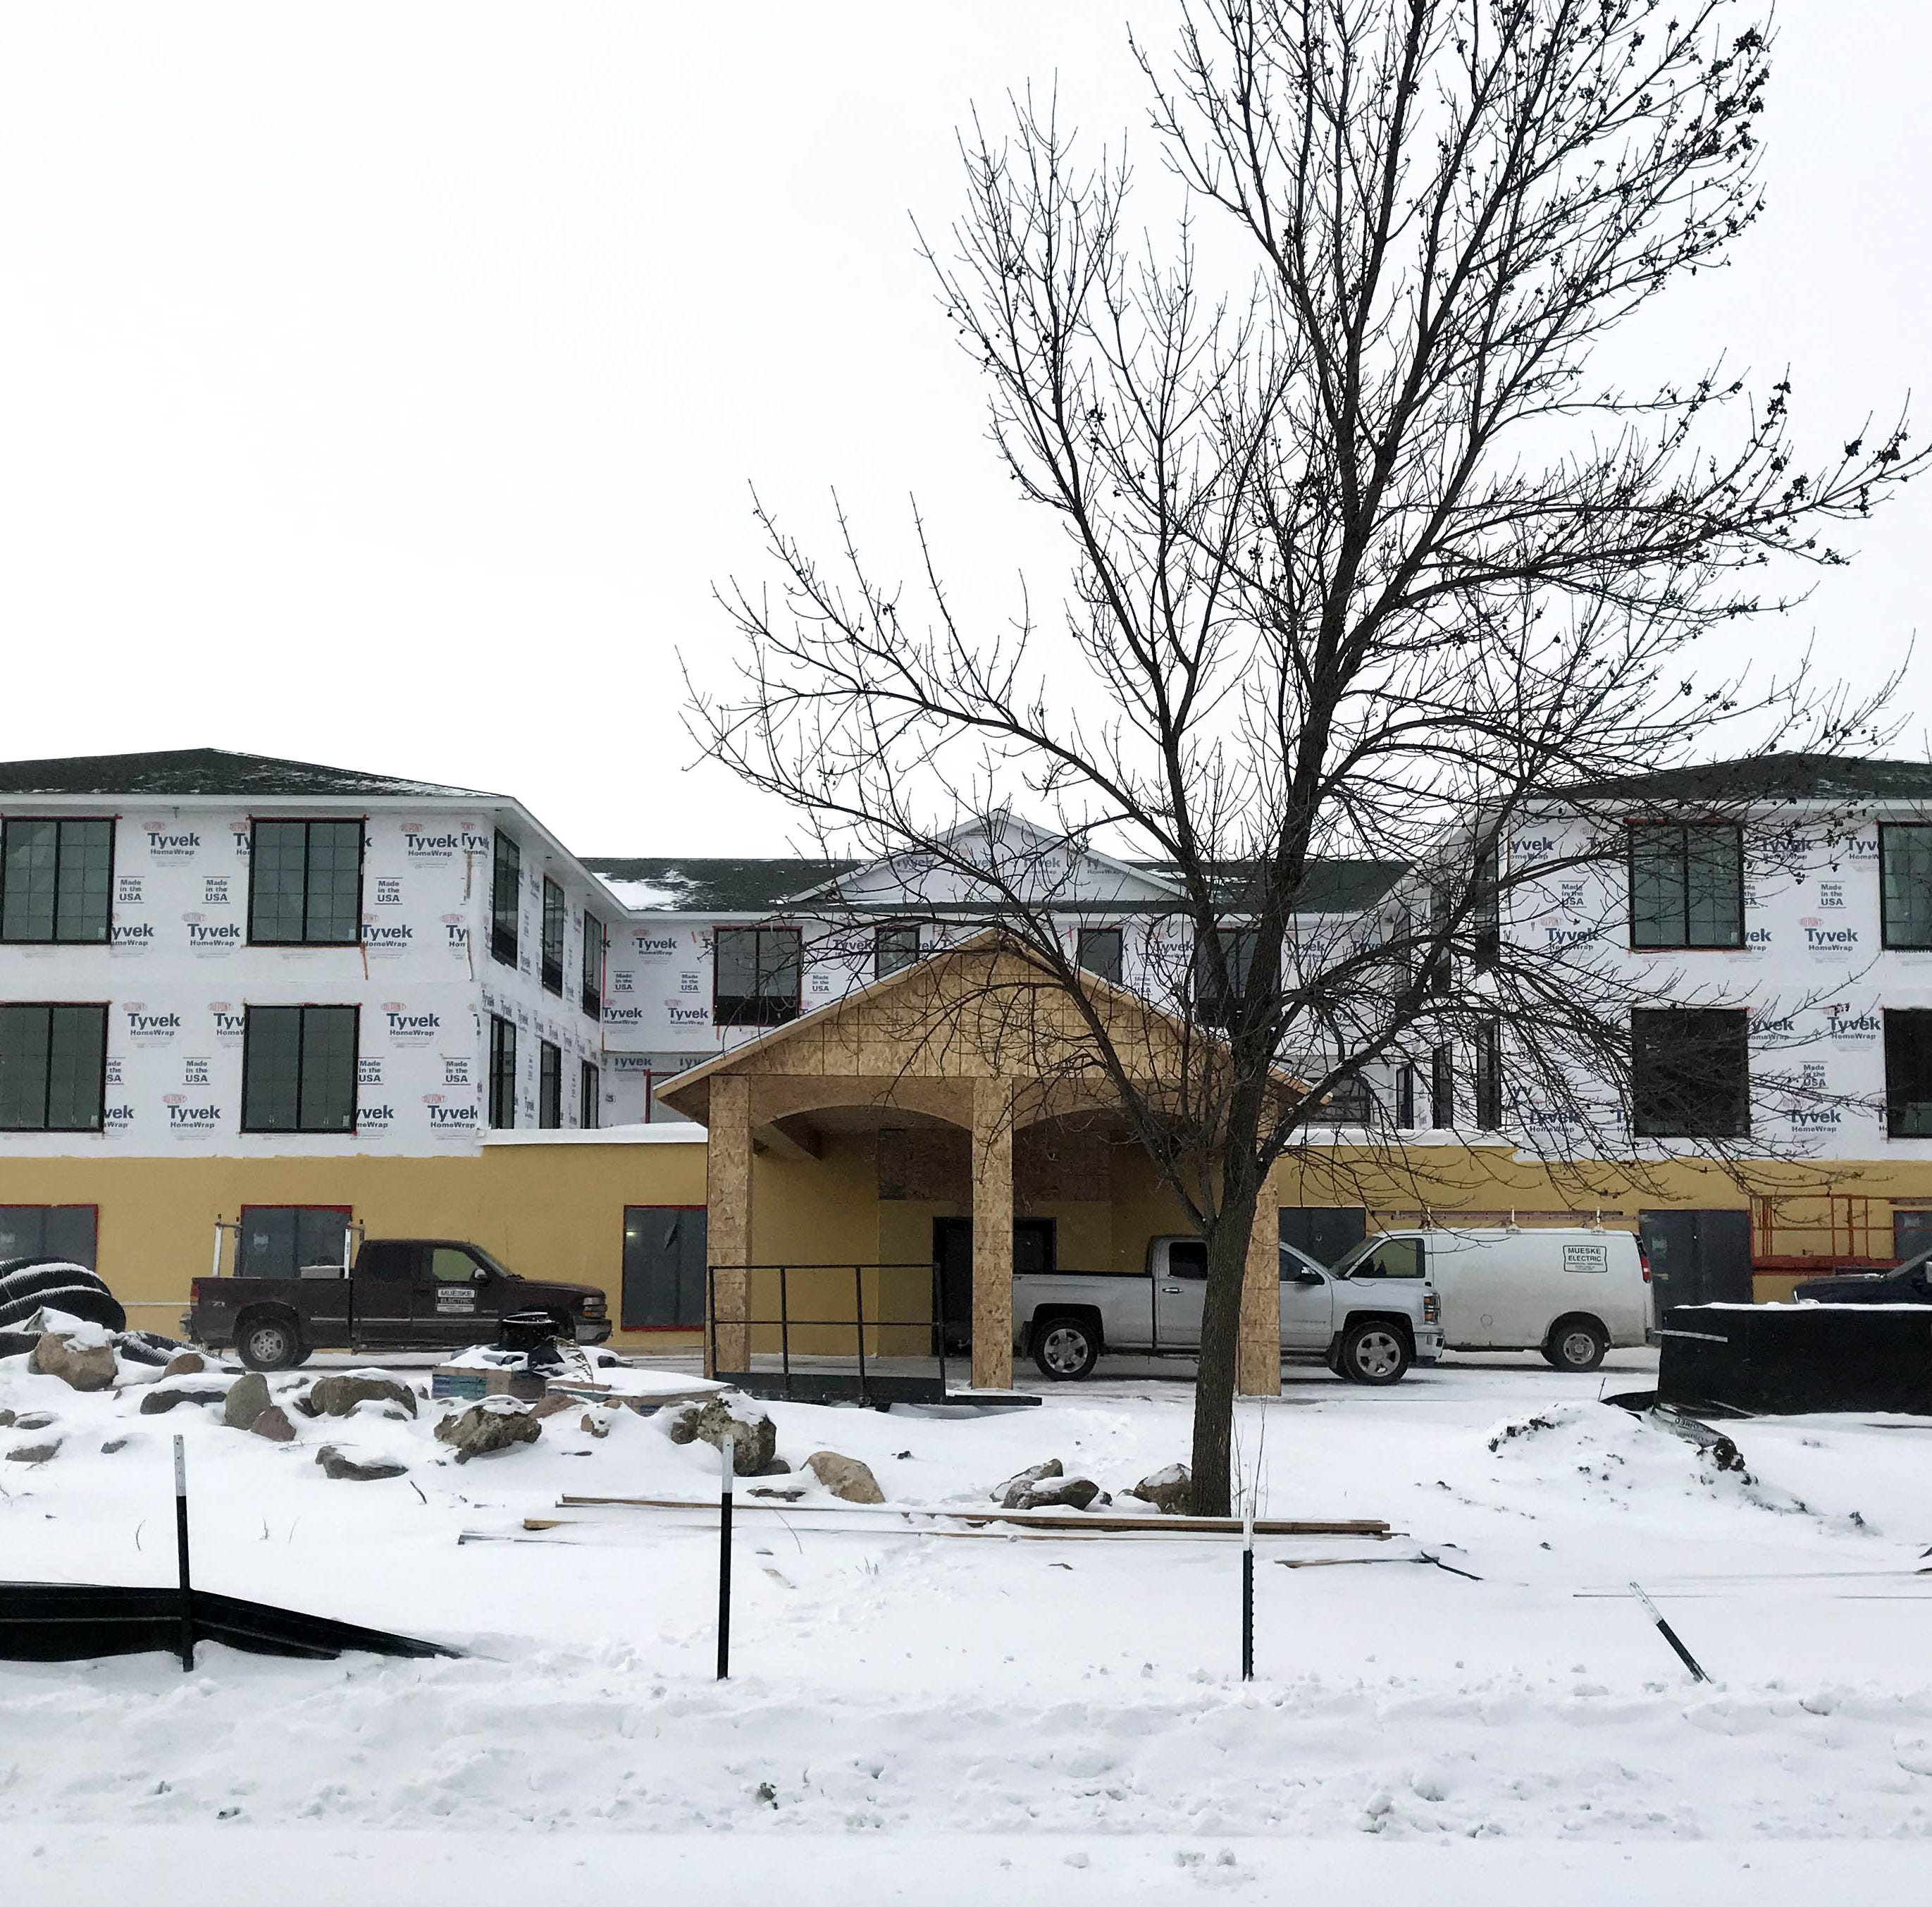 New hotel aims for 'classic Okoboji', with touches of beloved, demolished Inn resort